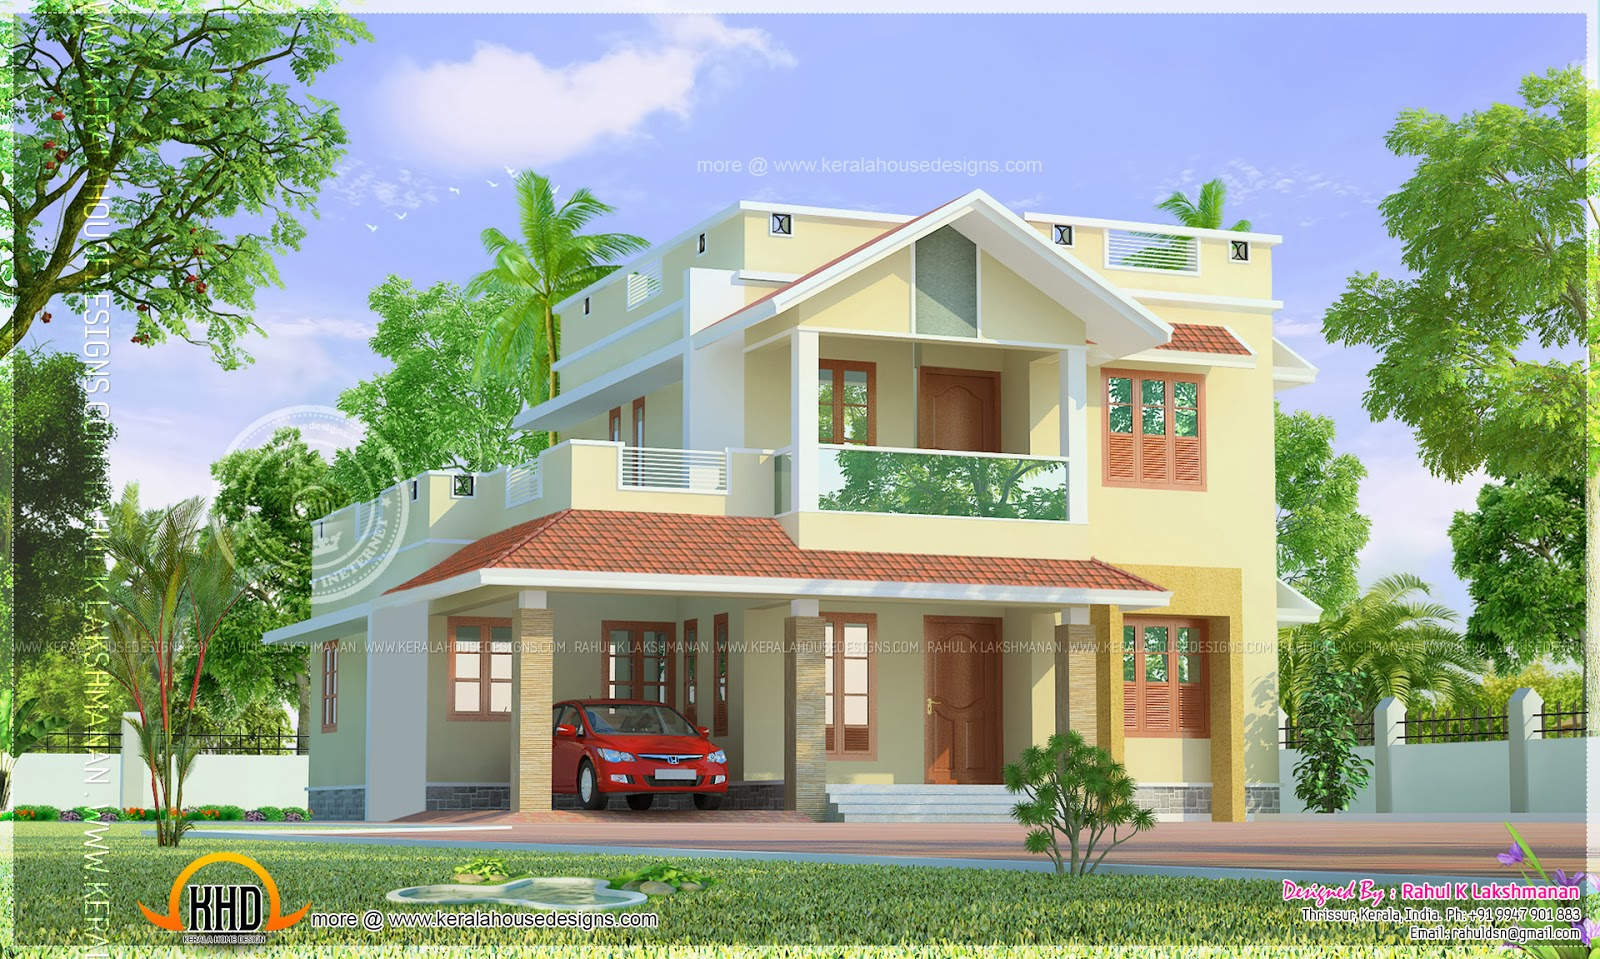 Cute little two storied home design kerala home design for Cute house decor